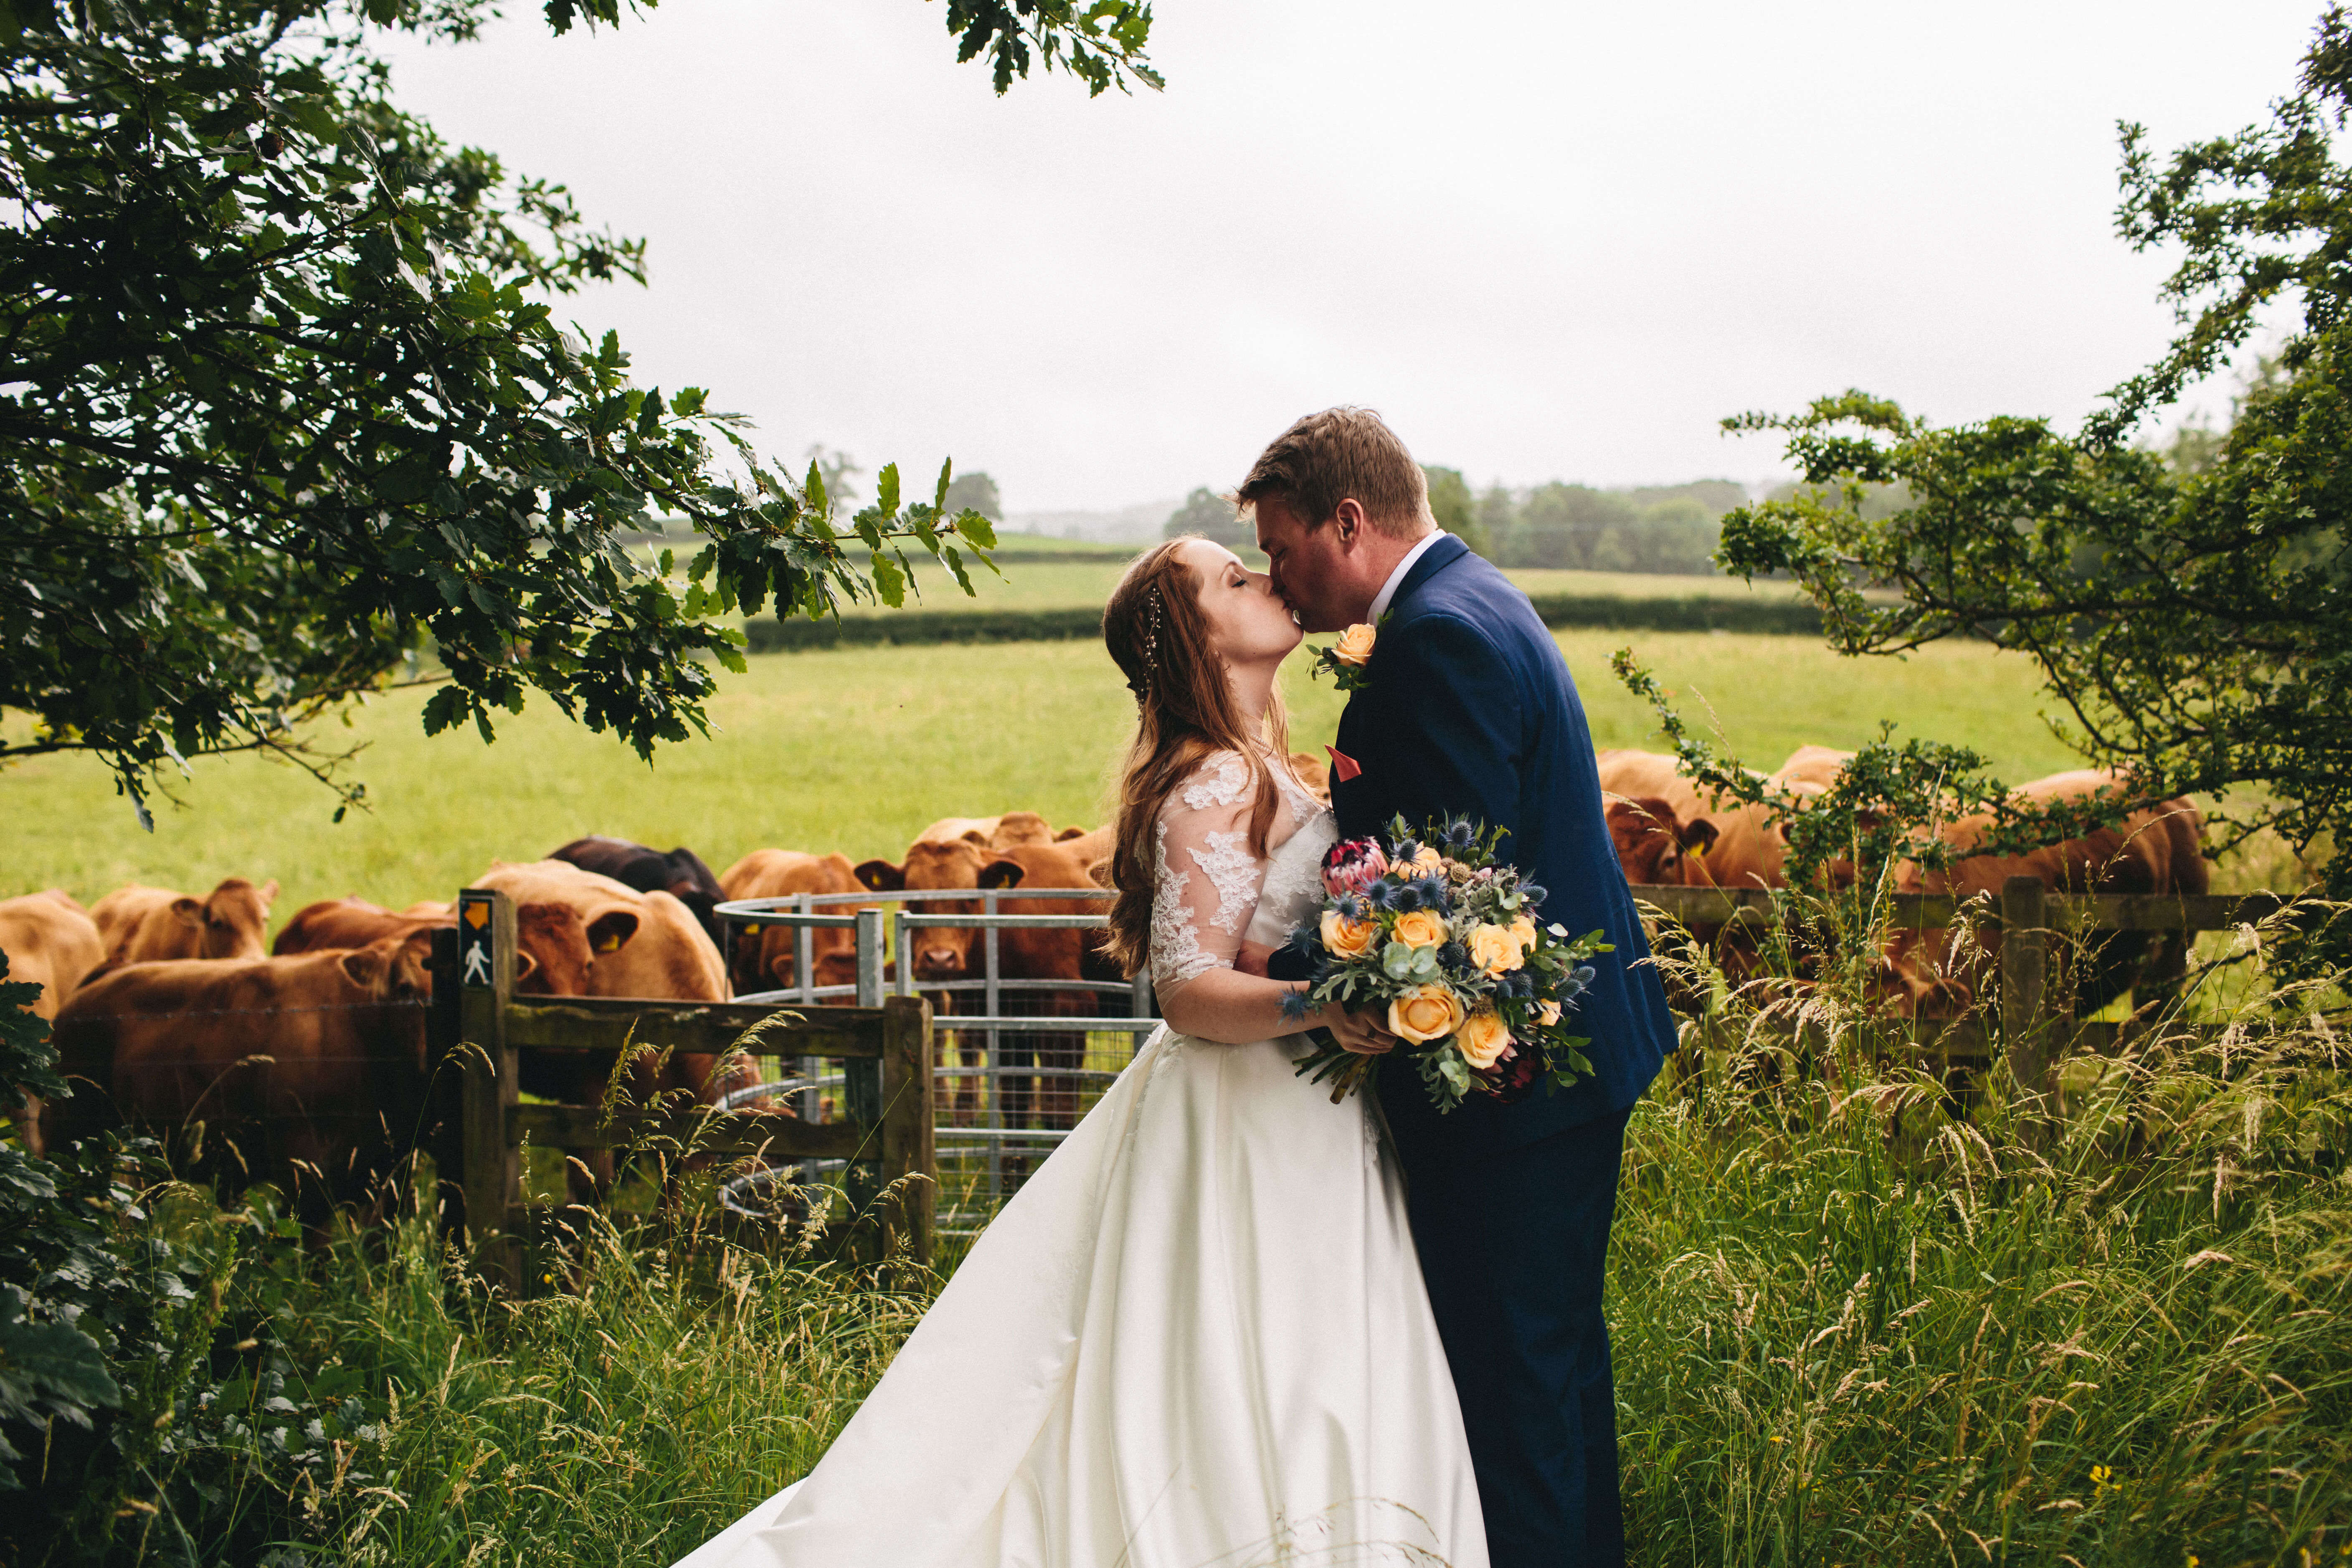 Our 10 Favourite Wedding Photo spots around the grounds of Tower Hill Barns in North Wales